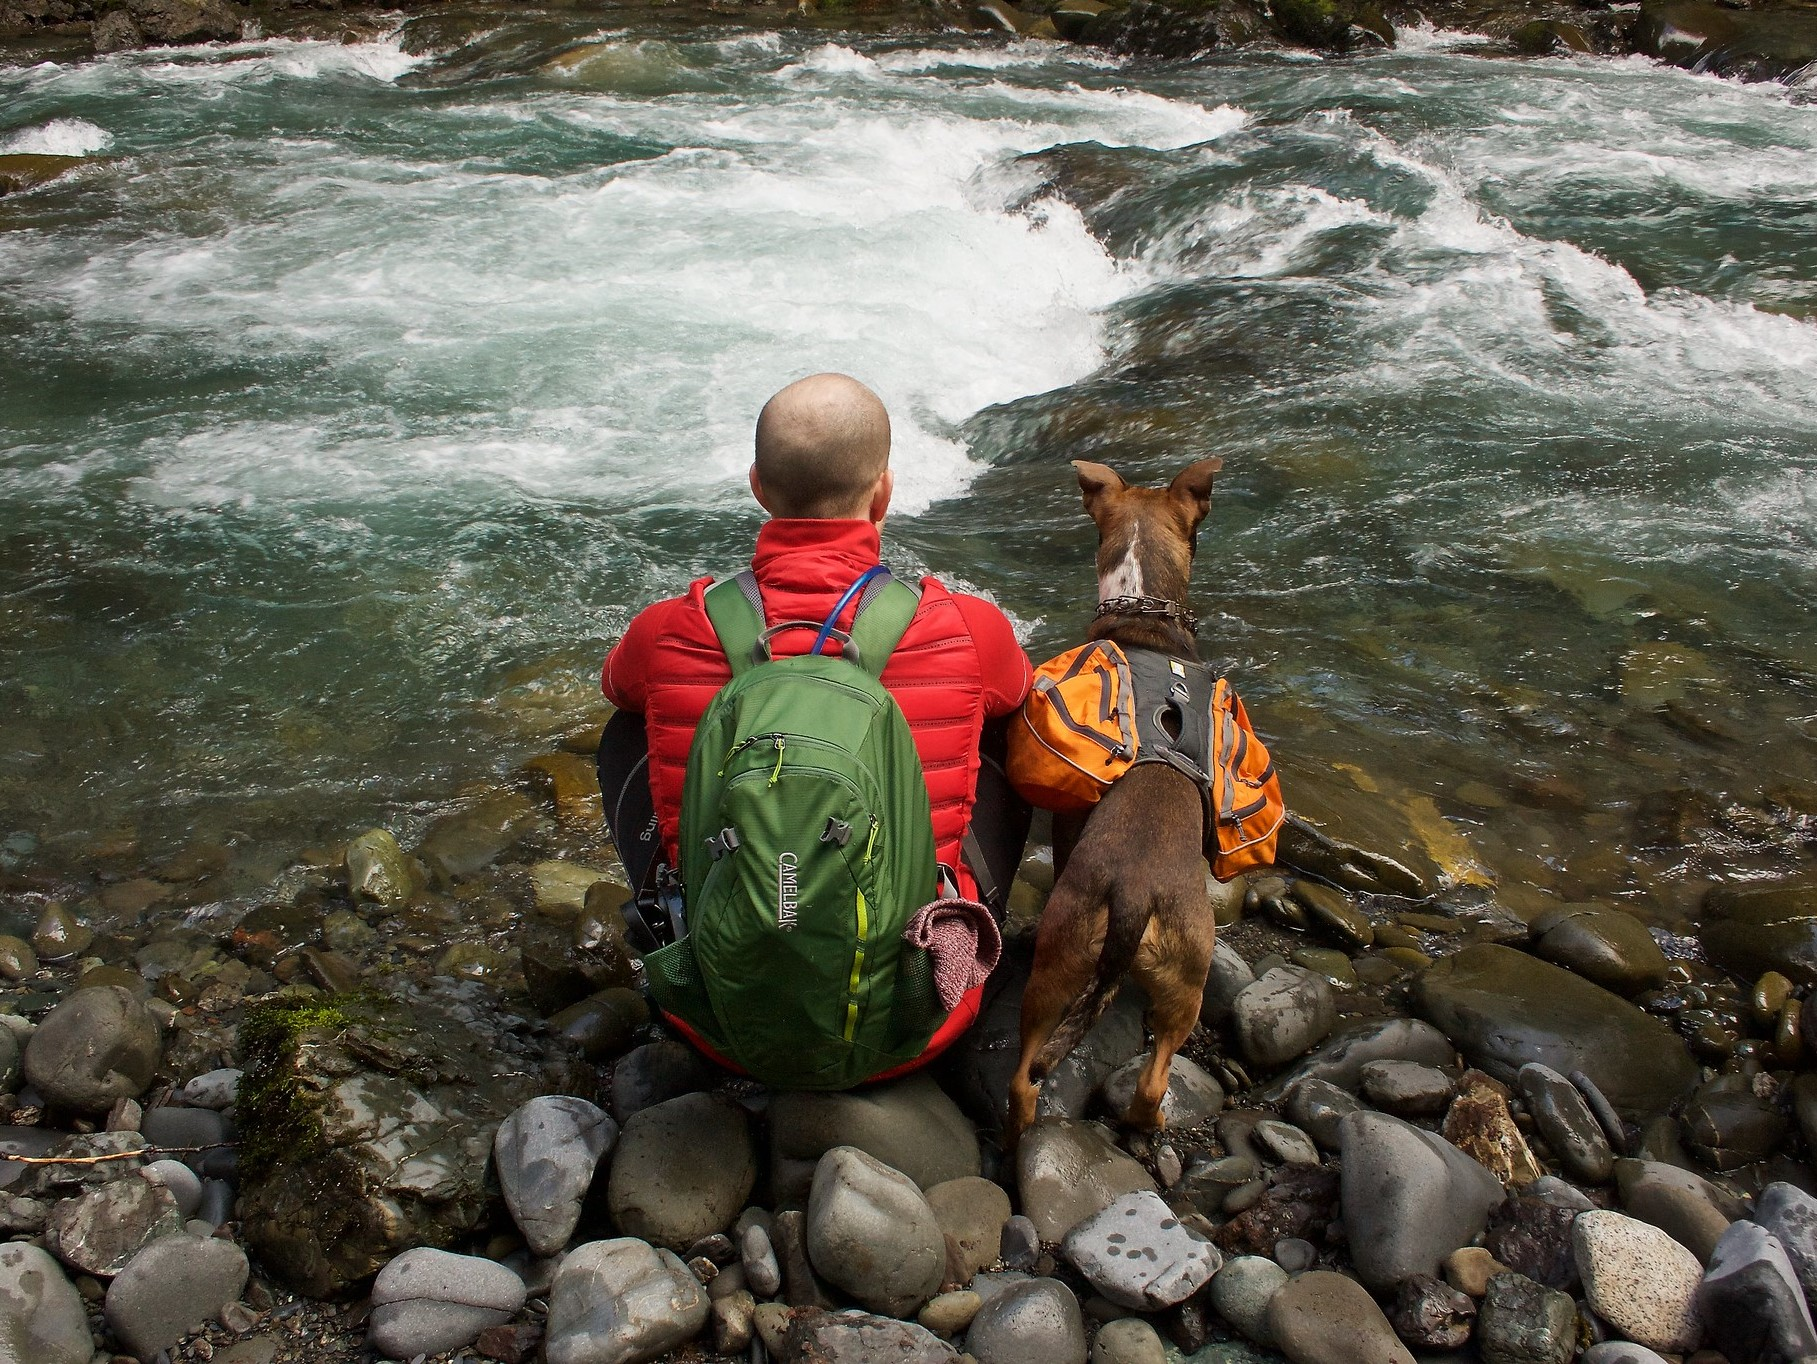 Dog and hiker sitting along a river